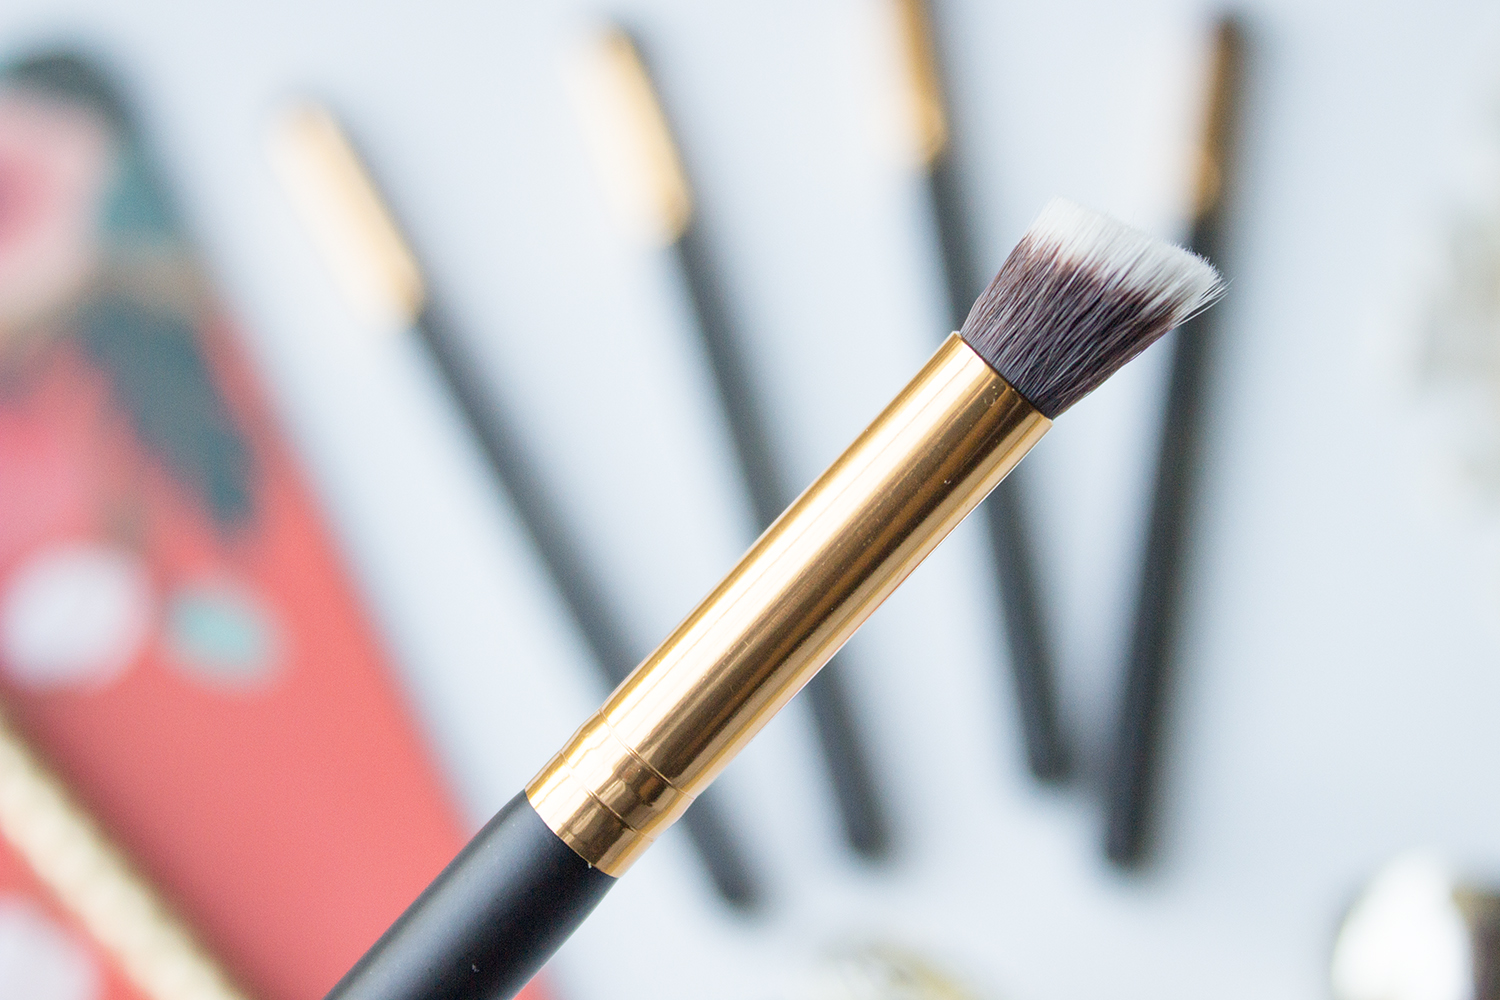 BH Cosmetics Sculpt & Blend Small Angled Contouring Face Brush